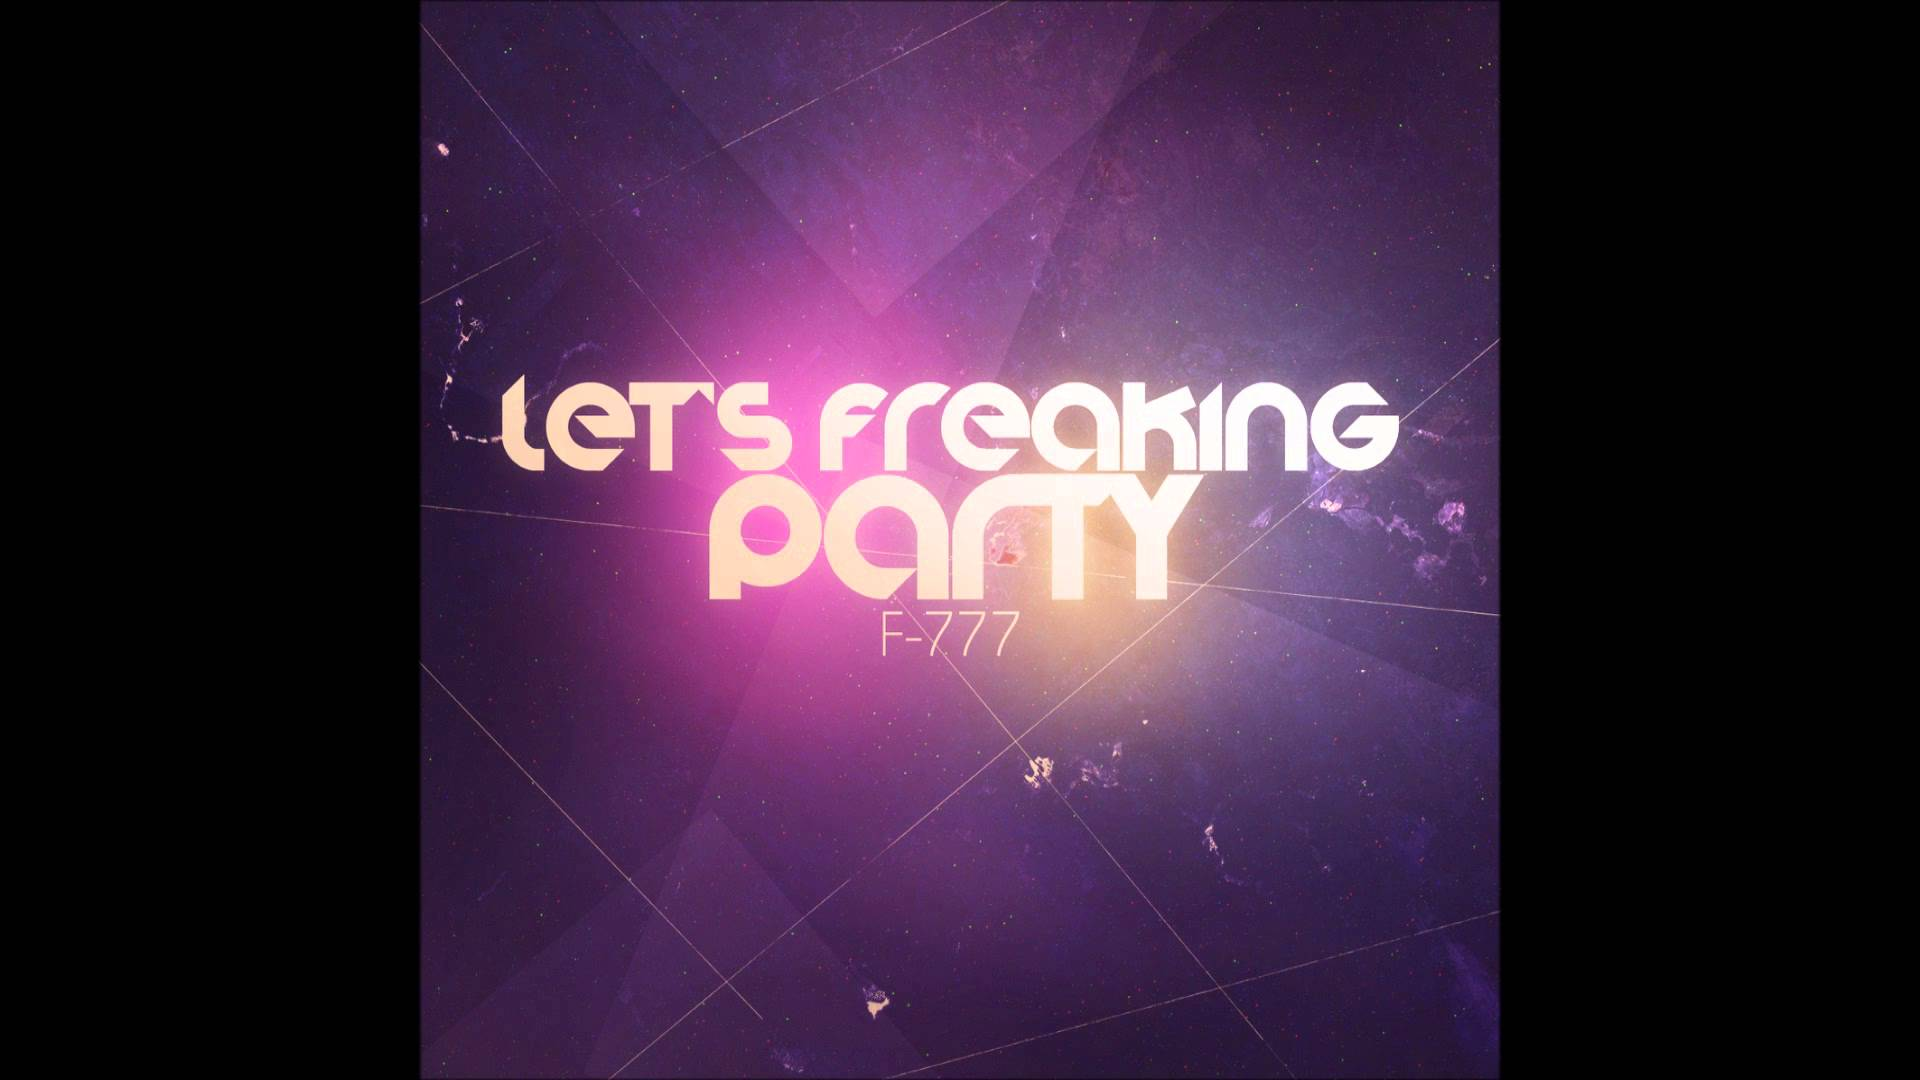 """F-777 - Sonic Blaster (4th track from """"Let's Freaking Party"""" album)"""